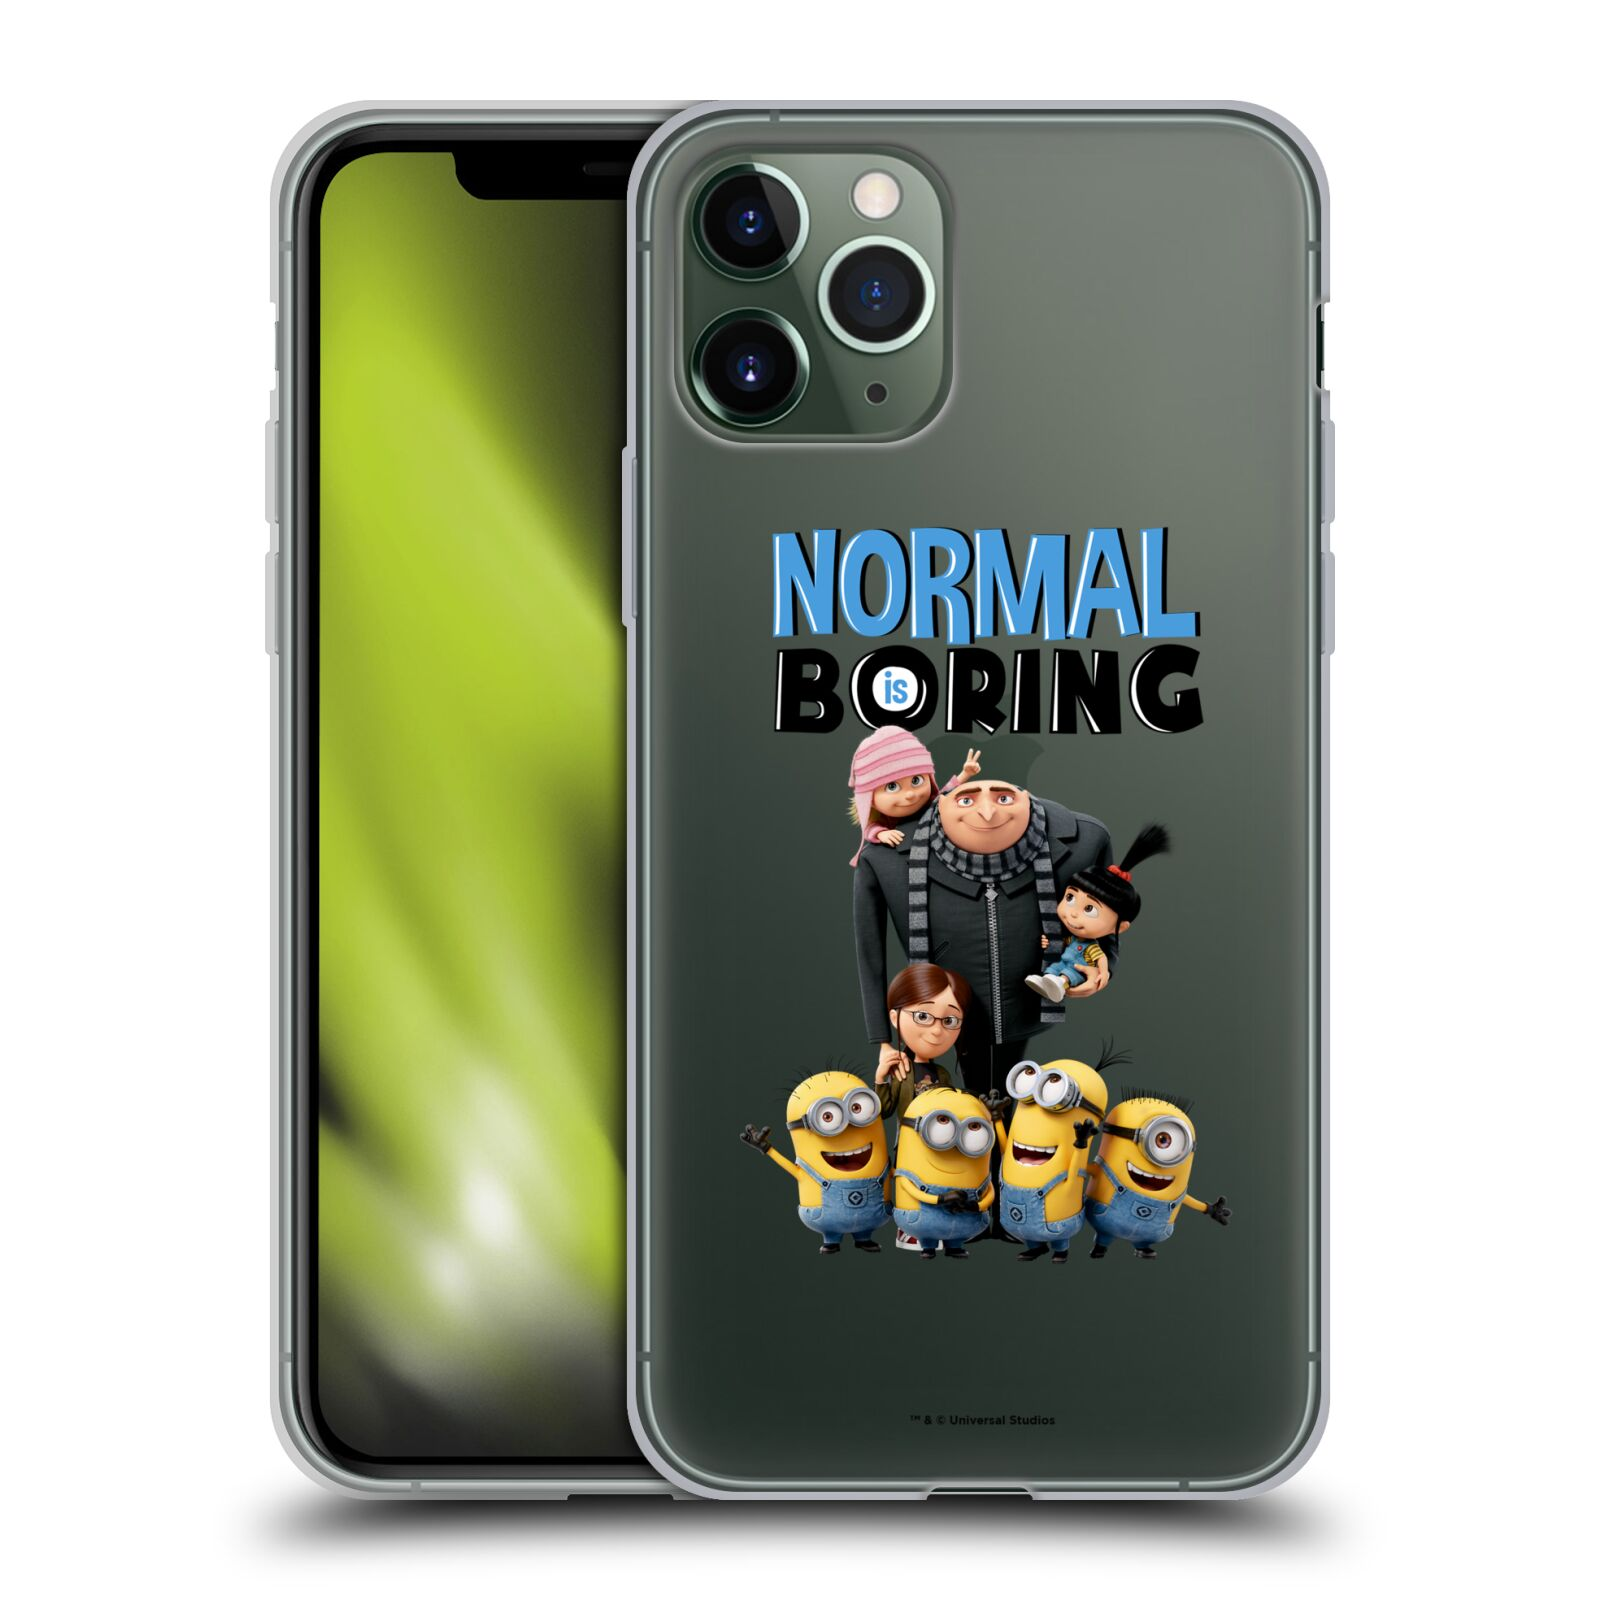 sklo obaly iphone 8 plus , Silikonové pouzdro na mobil Apple iPhone 11 Pro - Head Case - Normal is boring z filmu Já, padouch - Despicable Me